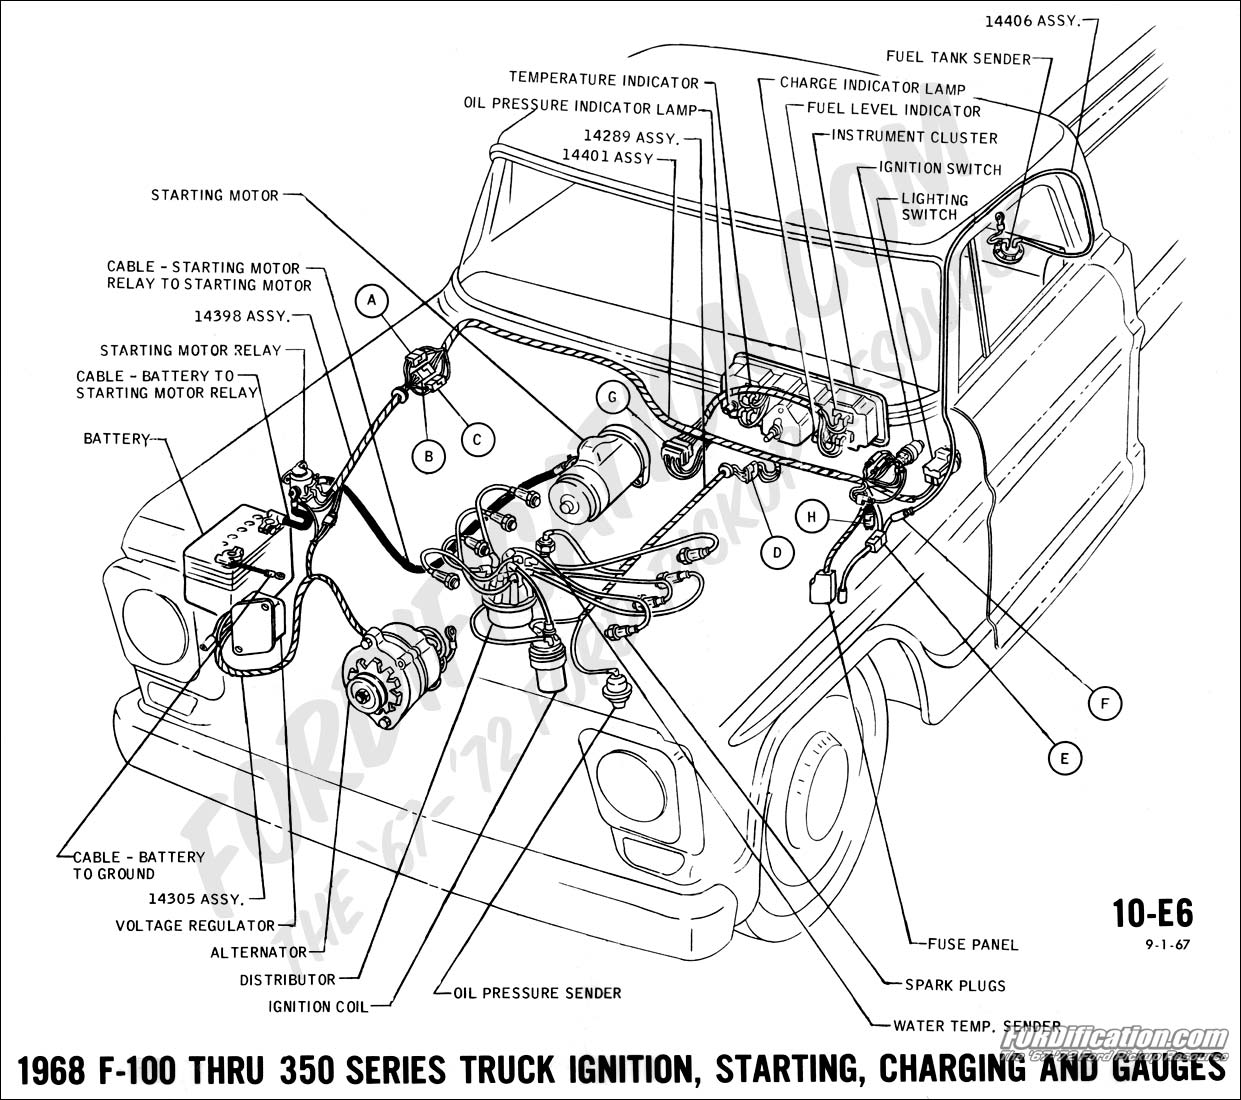 Tutorial Online 1956 Dodge Truck Wiring Diagram | ePANEL ... on understanding transformer diagrams, understanding engineering drawings, understanding foundation diagrams, understanding circuits diagrams, pinout diagrams, understanding electrical diagrams, electronic circuit diagrams, understanding ladder diagrams, understanding schematic diagrams,